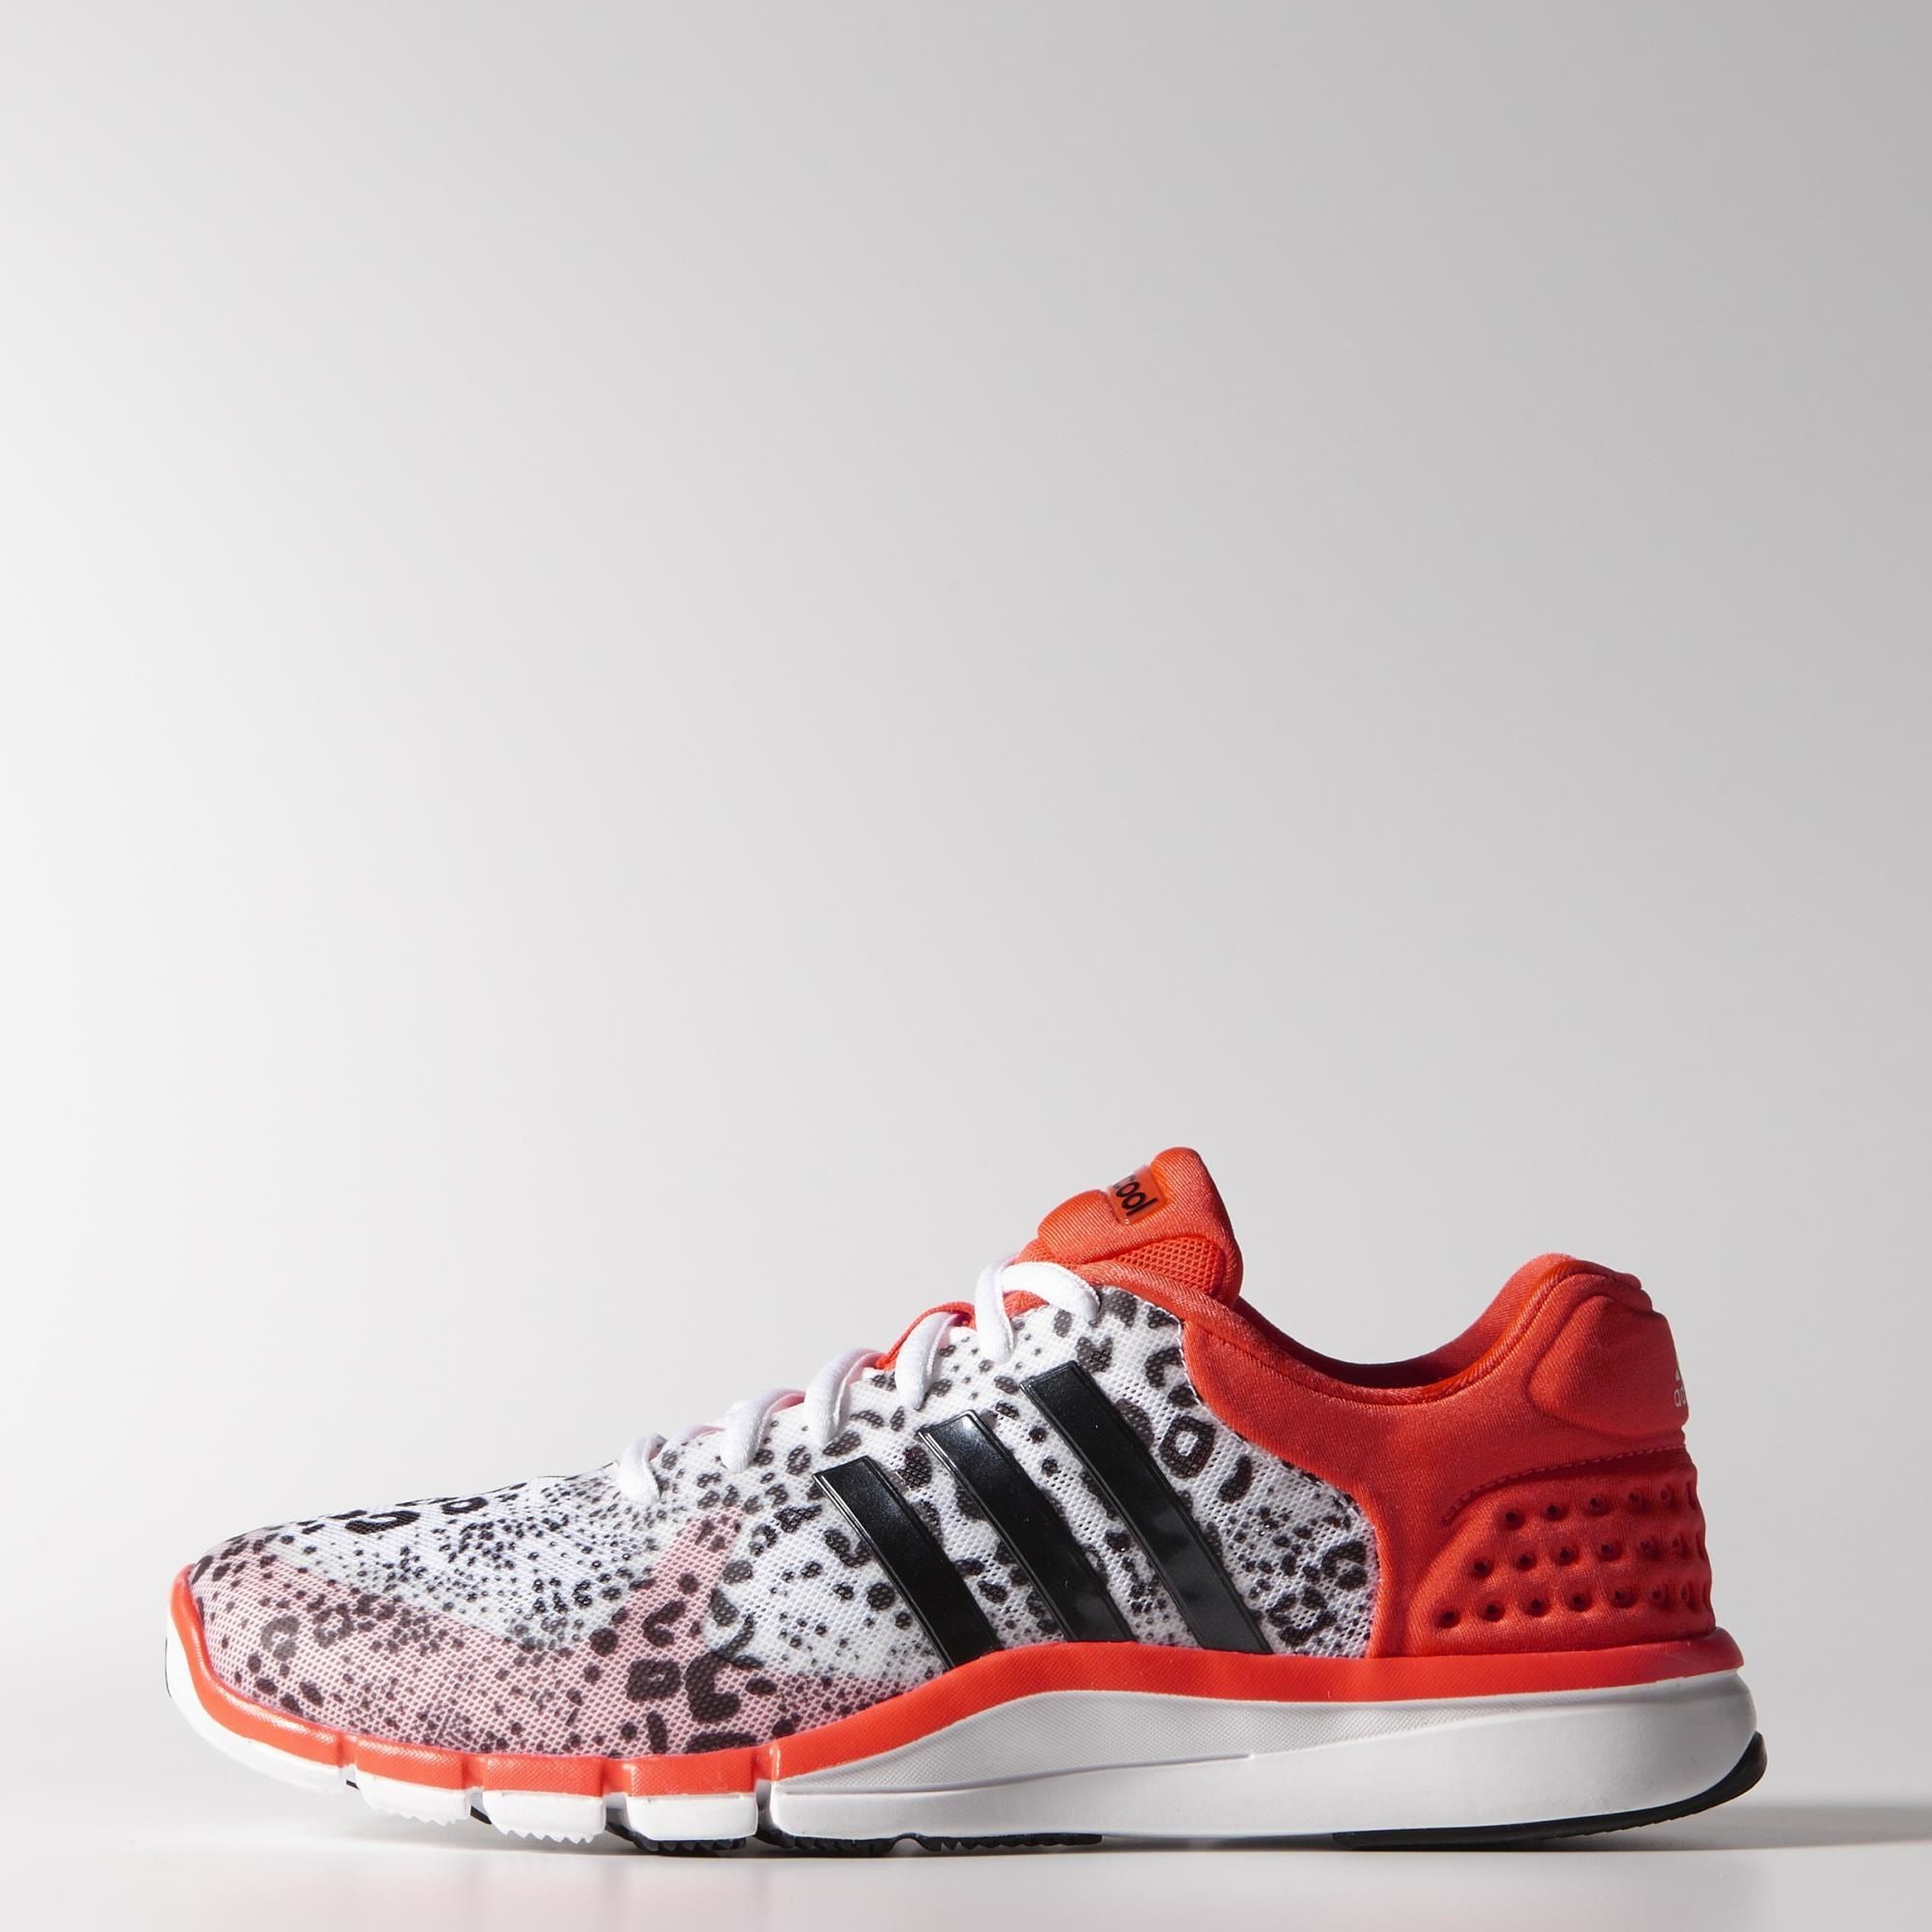 Adidas adiPure 360.2 Celebration Damen Training Schuhe